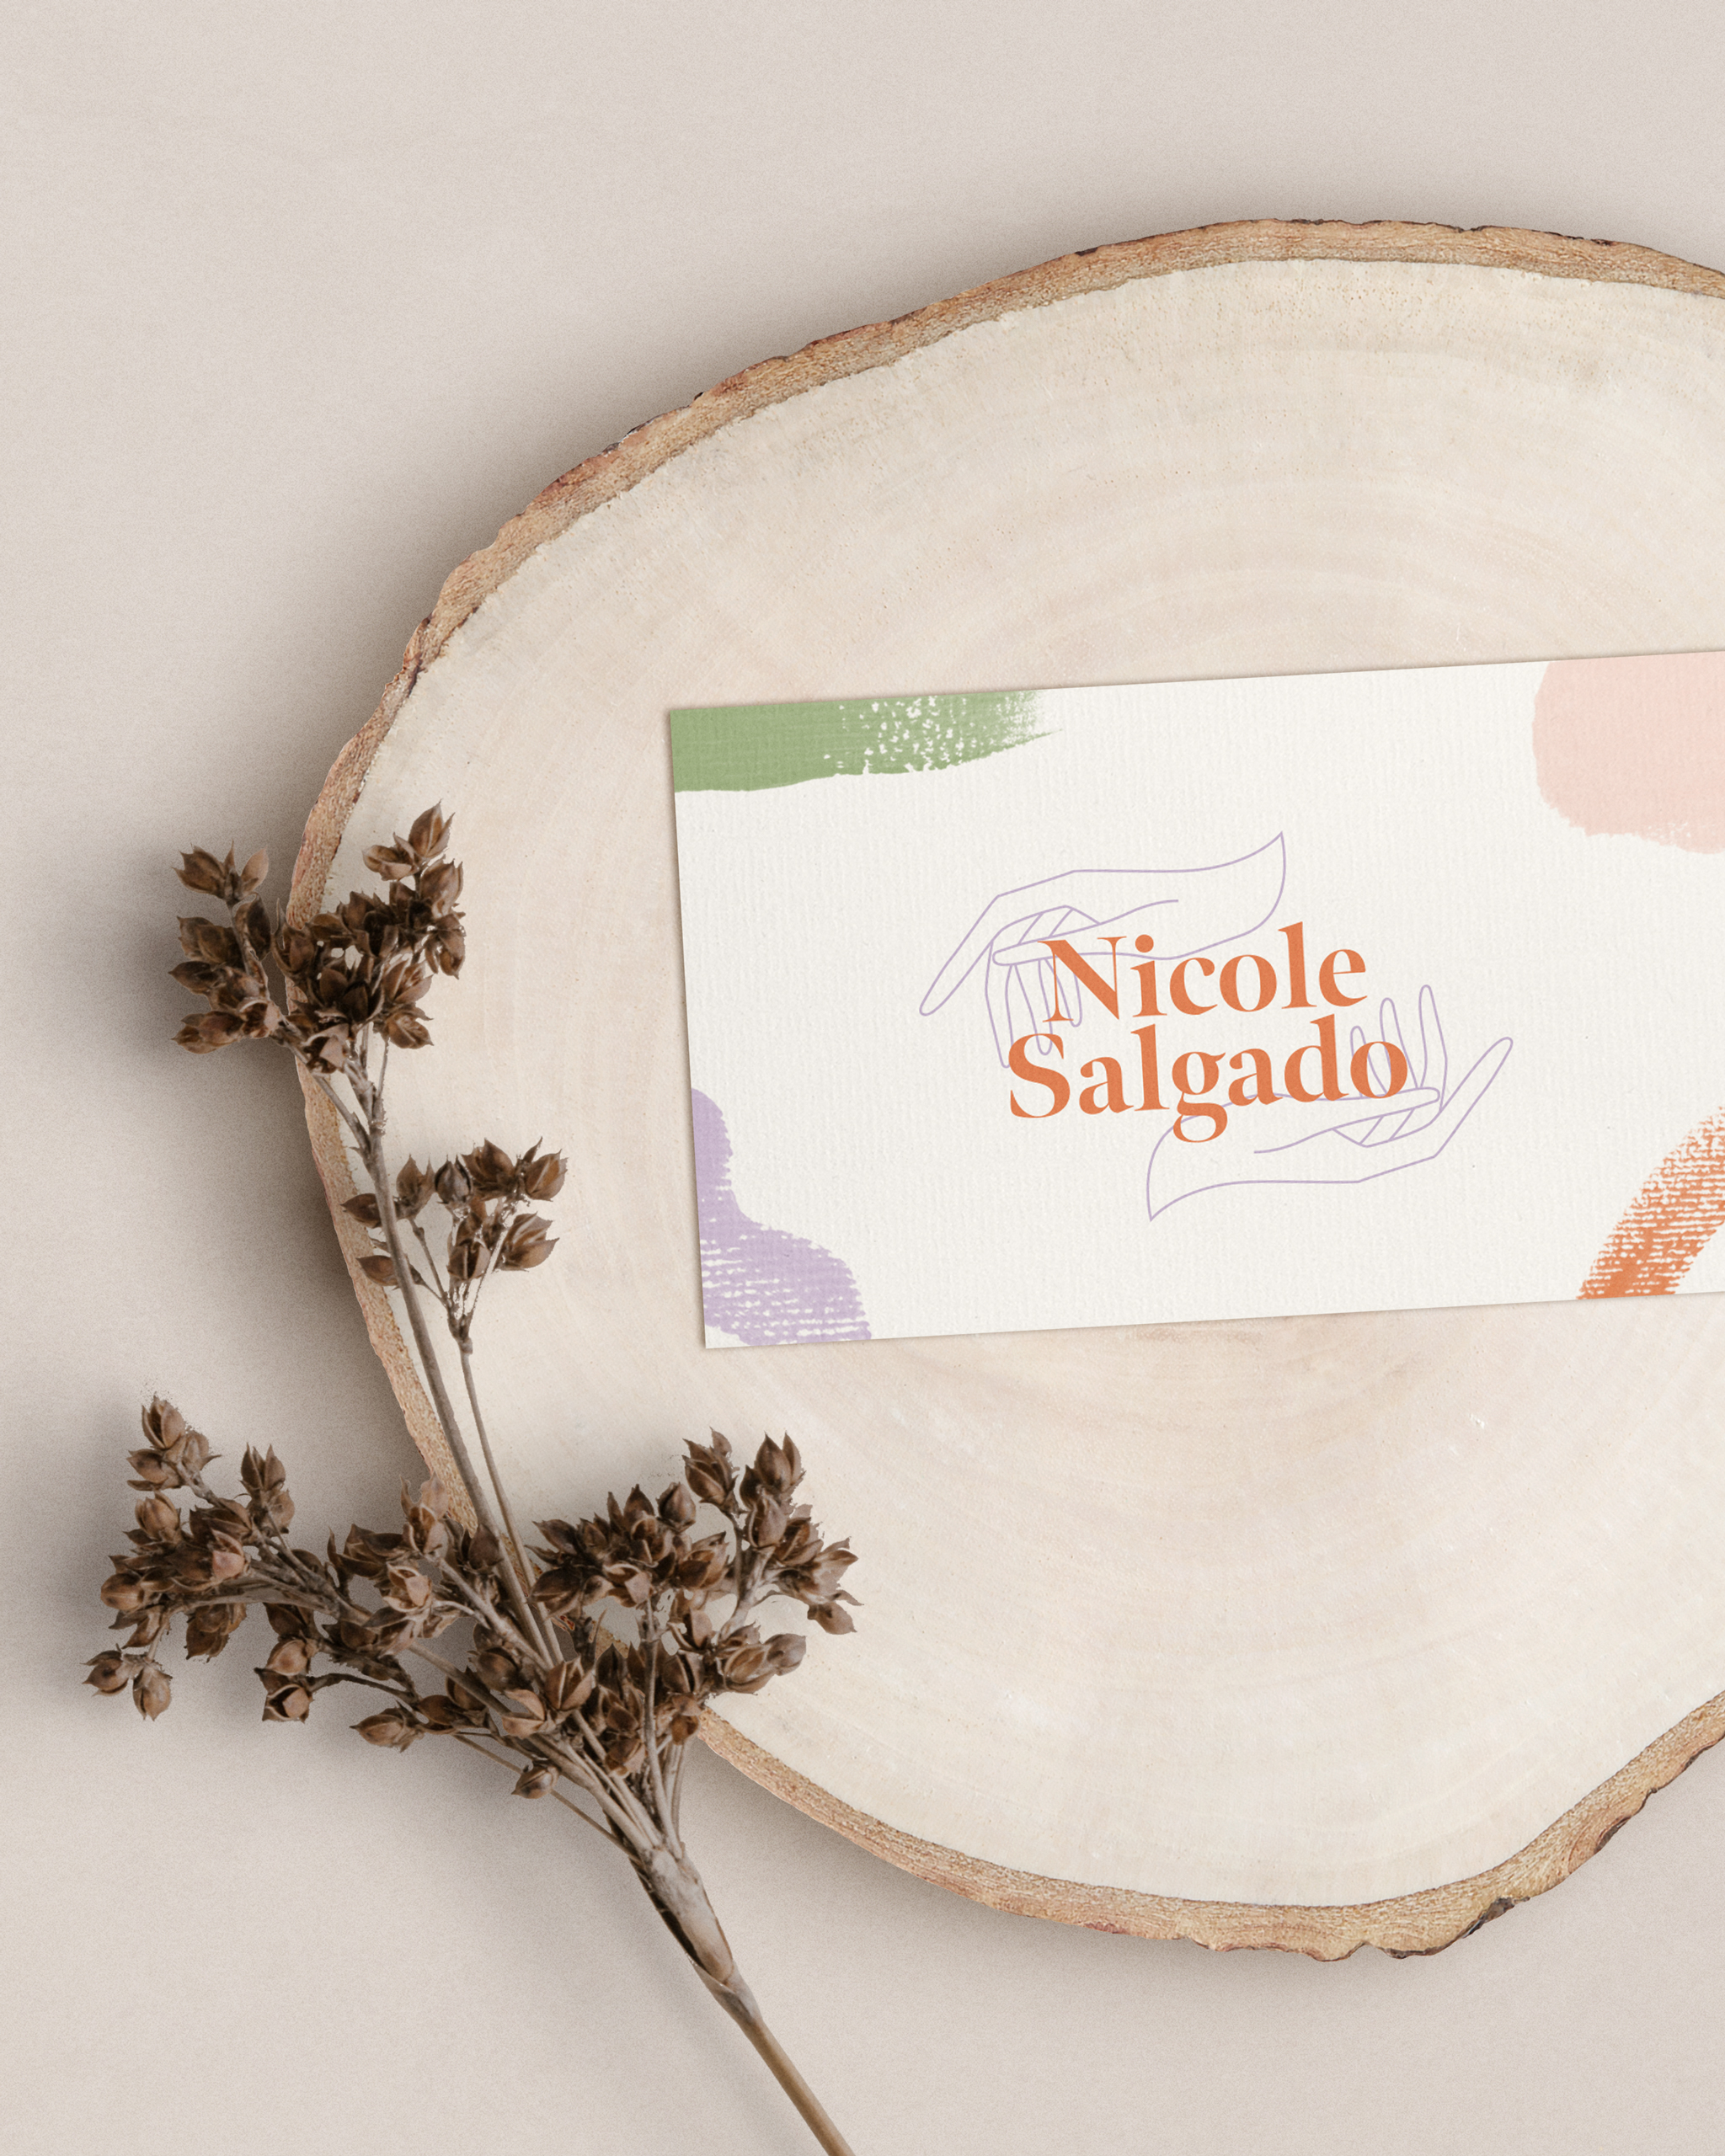 Nicole Salgado - Ethical fashion consultant business cards design